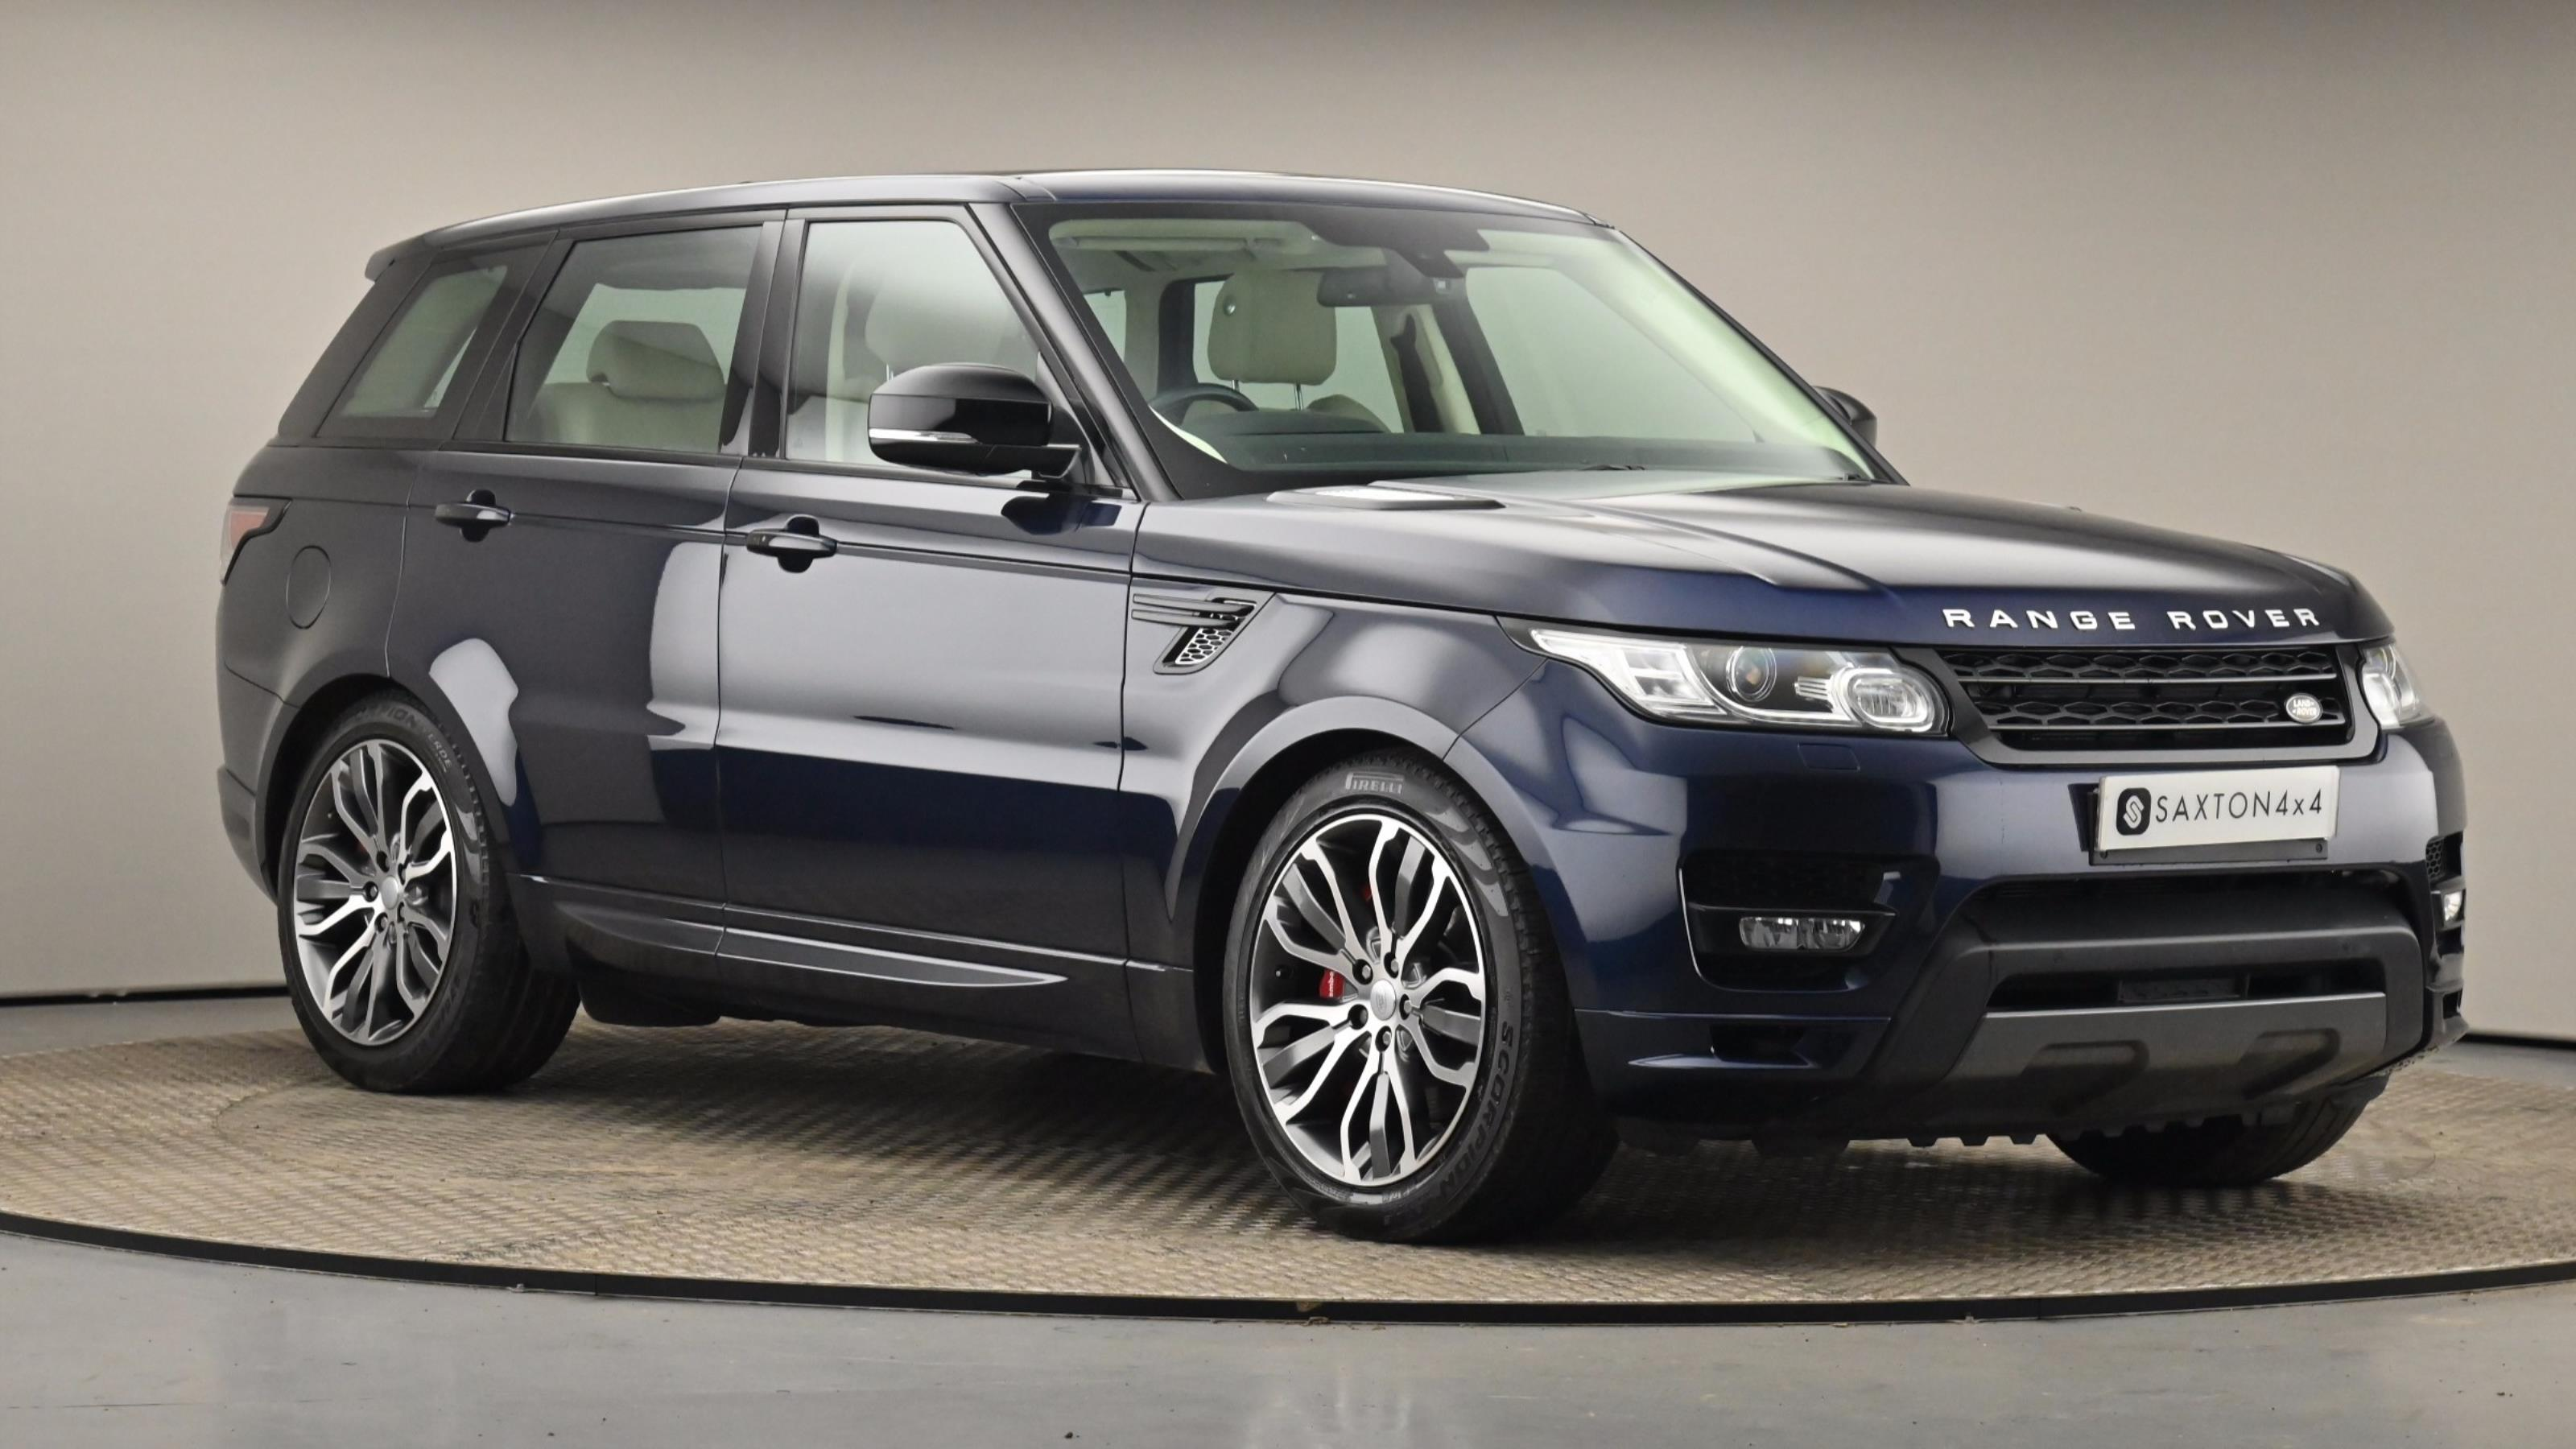 Used 2016 Land Rover RANGE ROVER SPORT 3.0 SDV6 [306] Autobiography Dynamic 5dr Auto at Saxton4x4